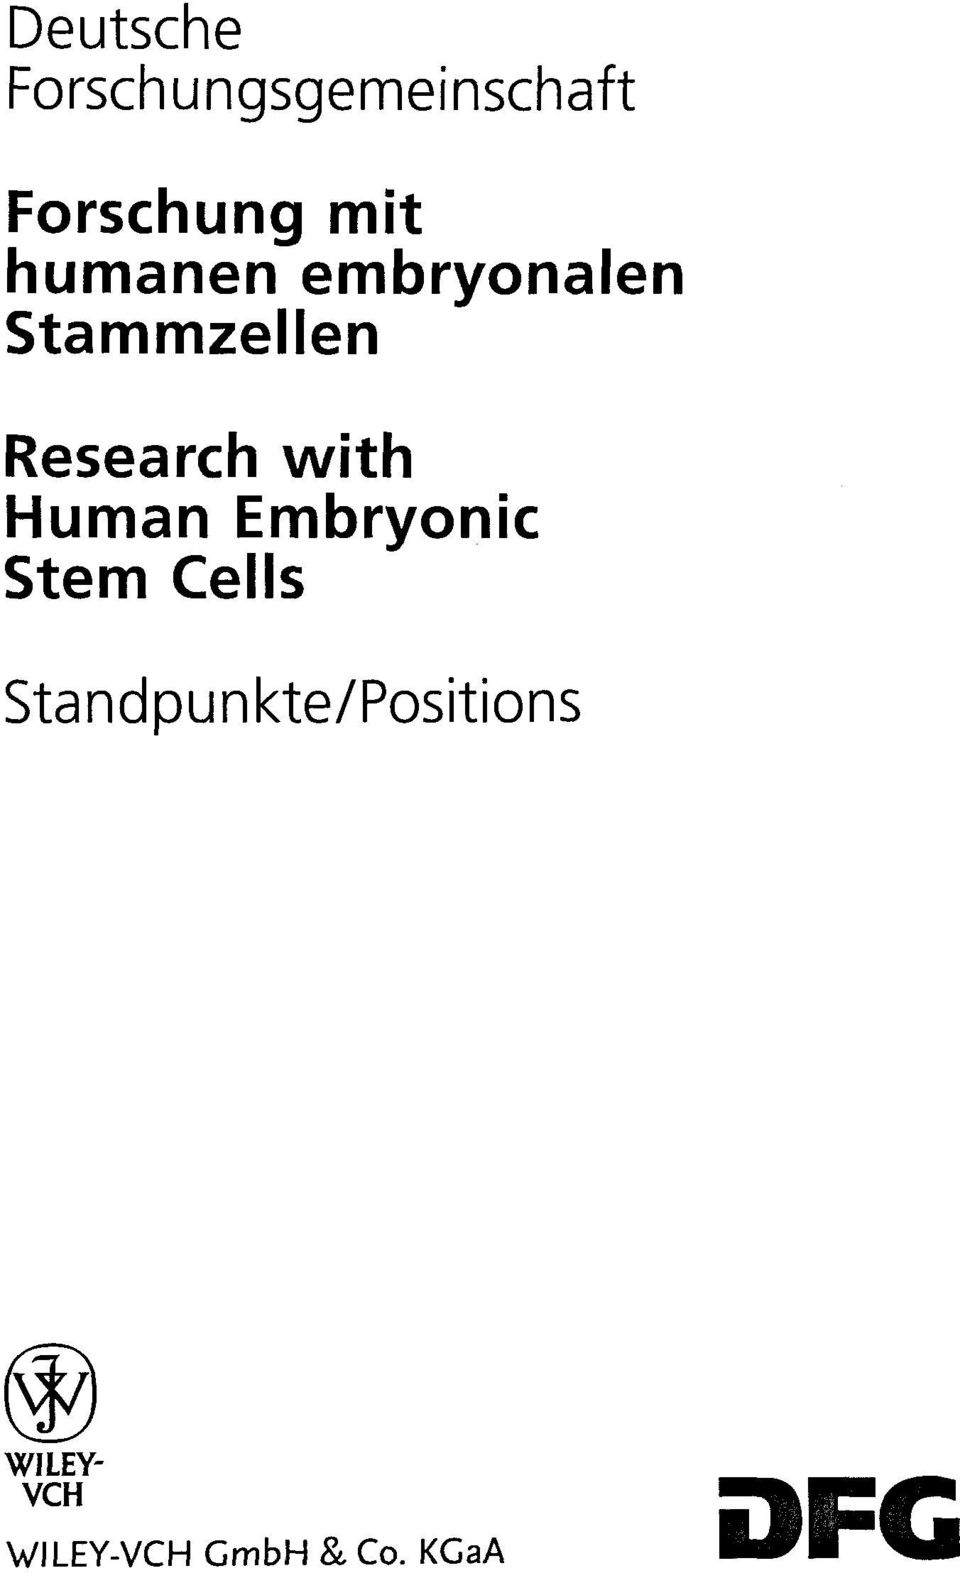 Human Embryonic Stern Cells